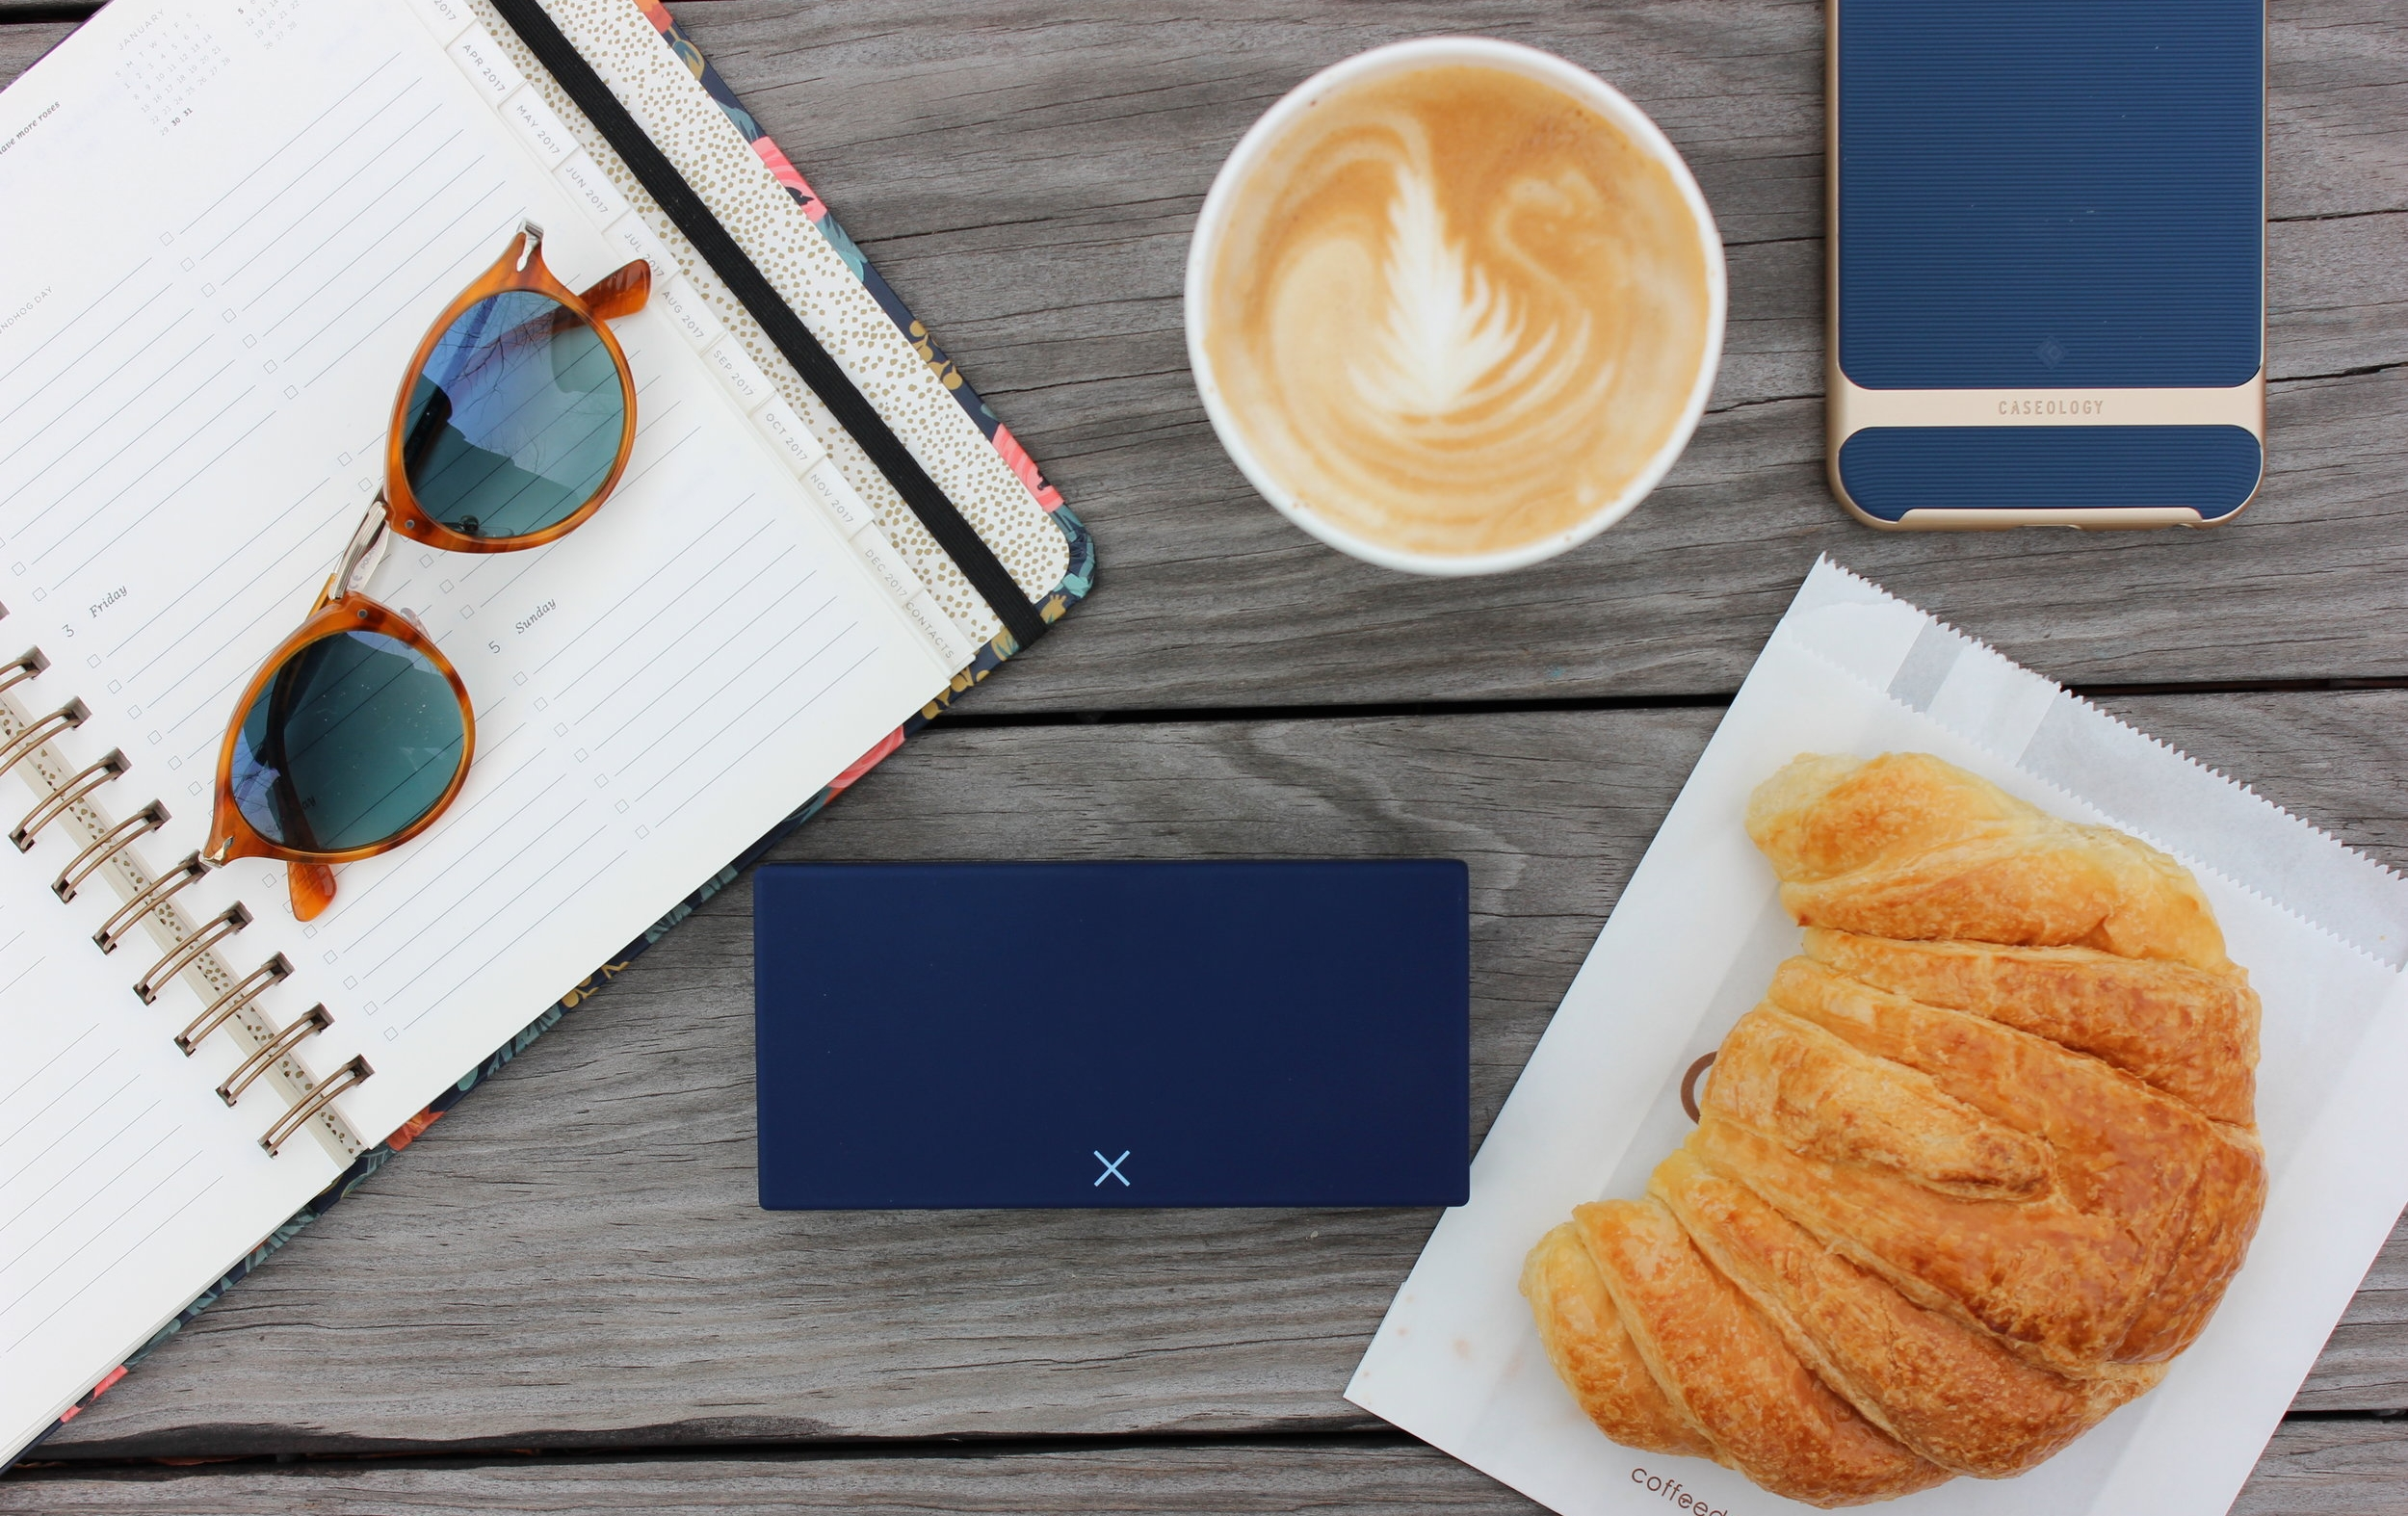 Blue pillbox with coffee and croissant